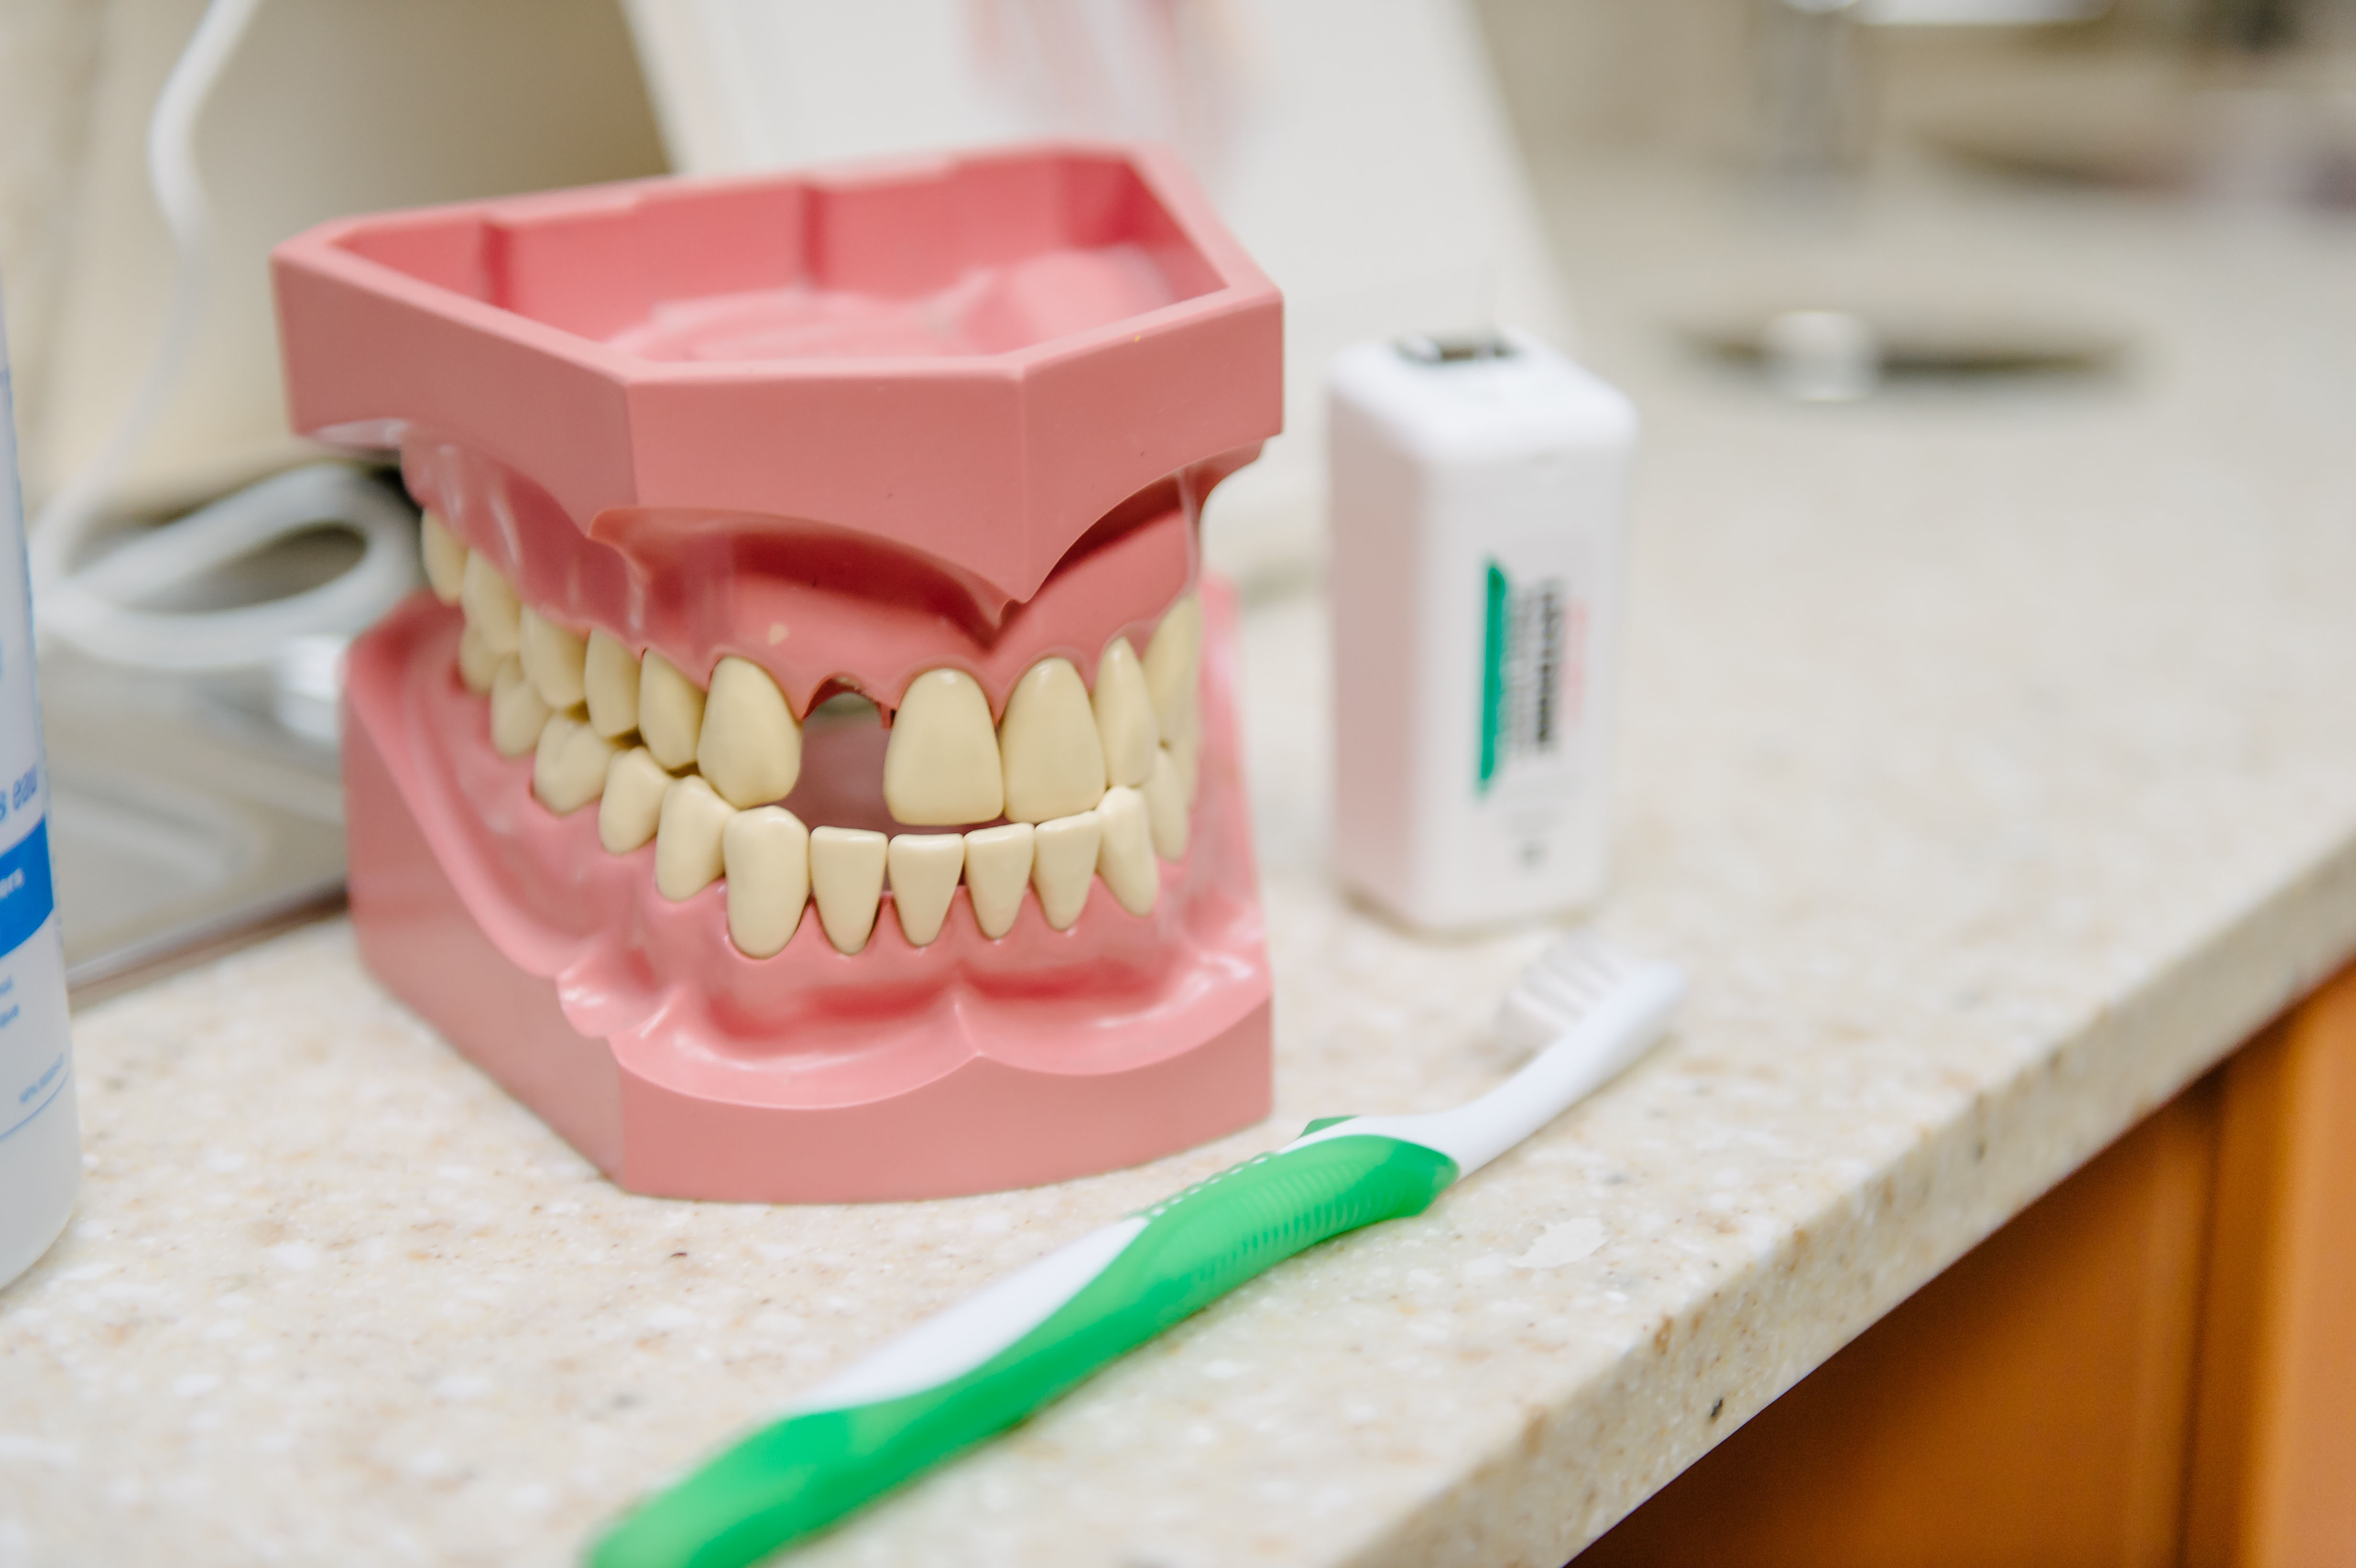 Model of teeth with one tooth missing, sitting beside a toothbrush and floss